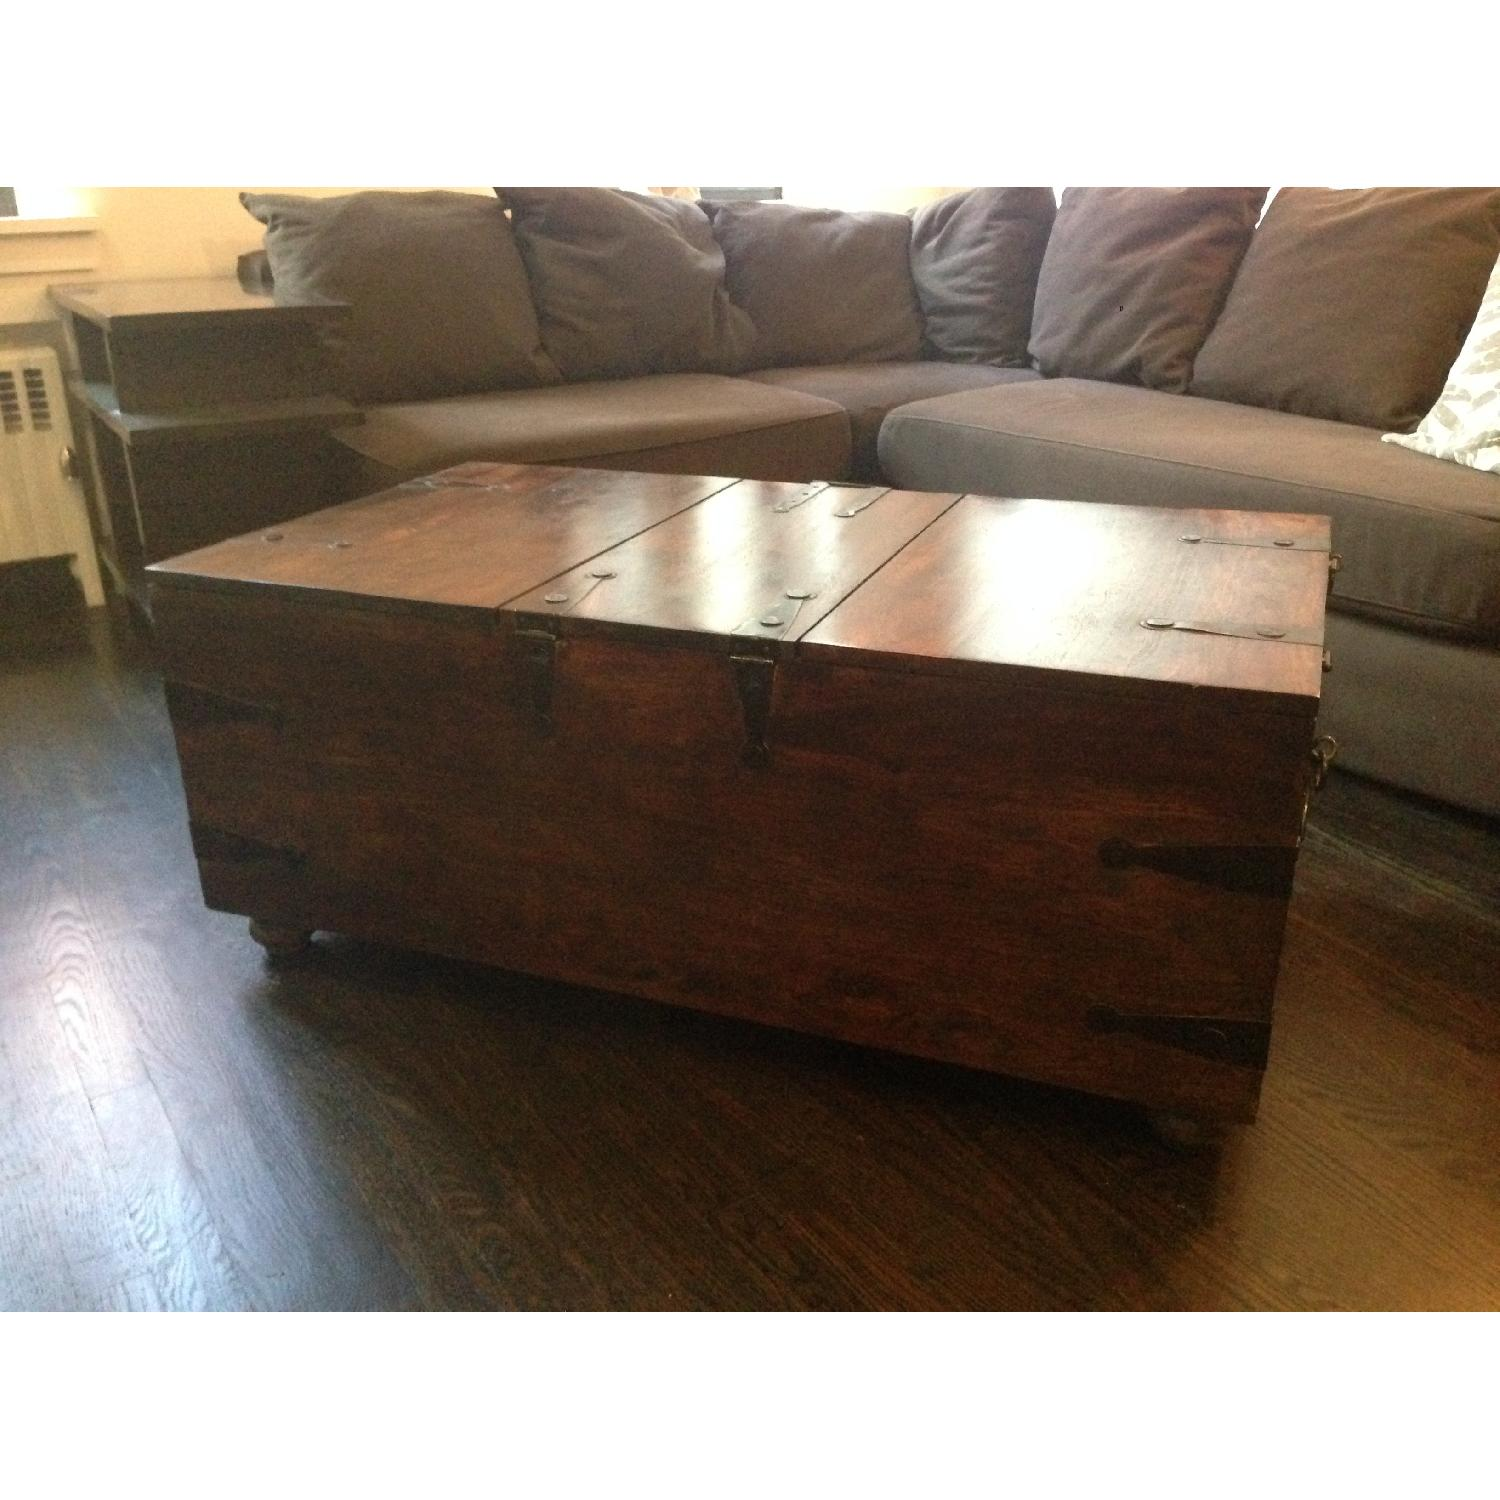 William Sheppee USA Solid Wood Trunk Coffee Table - image-5